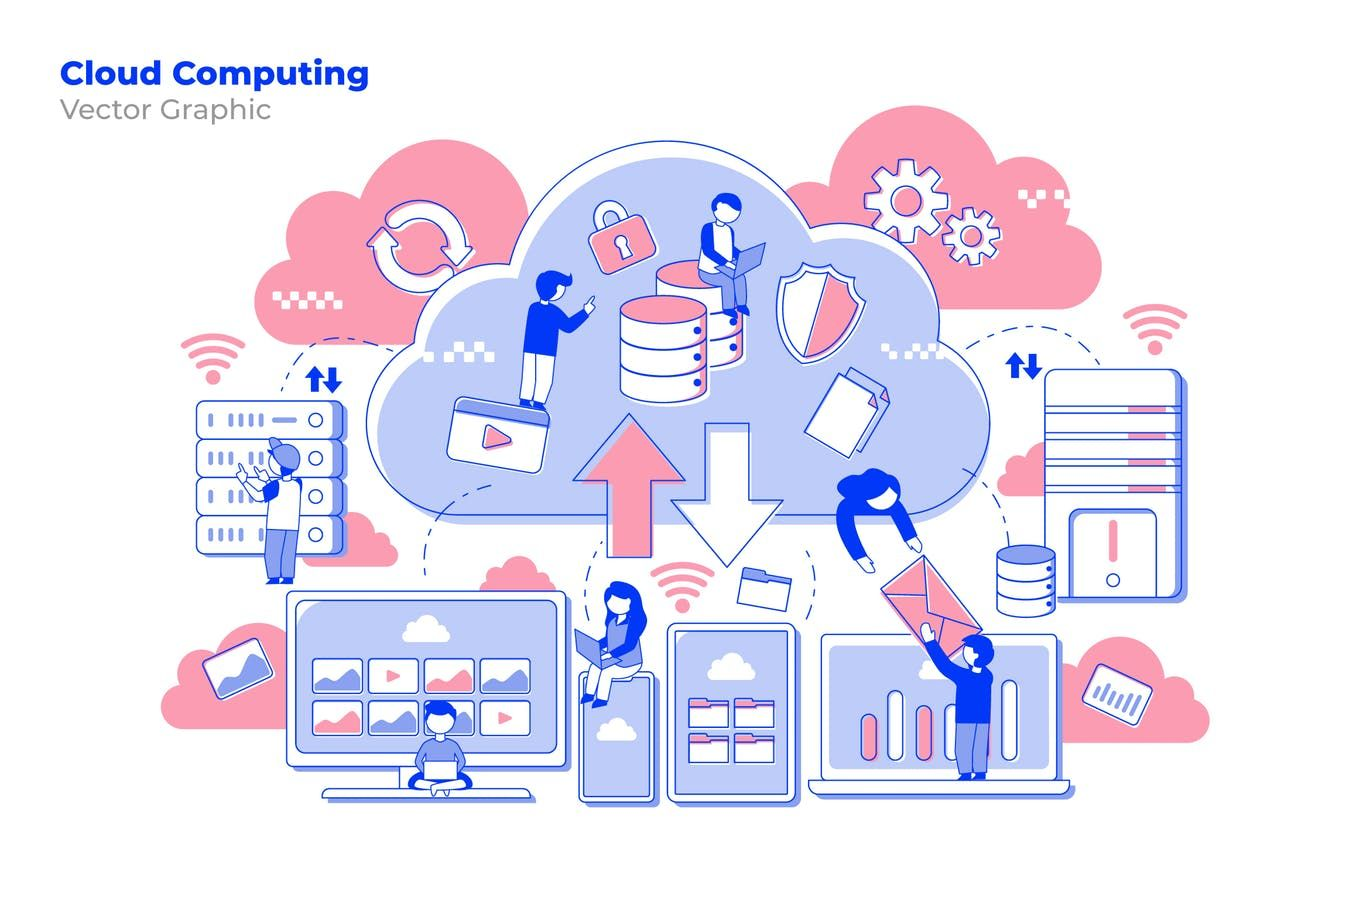 Cloud Computing Vector Illustration by aqrstudio on